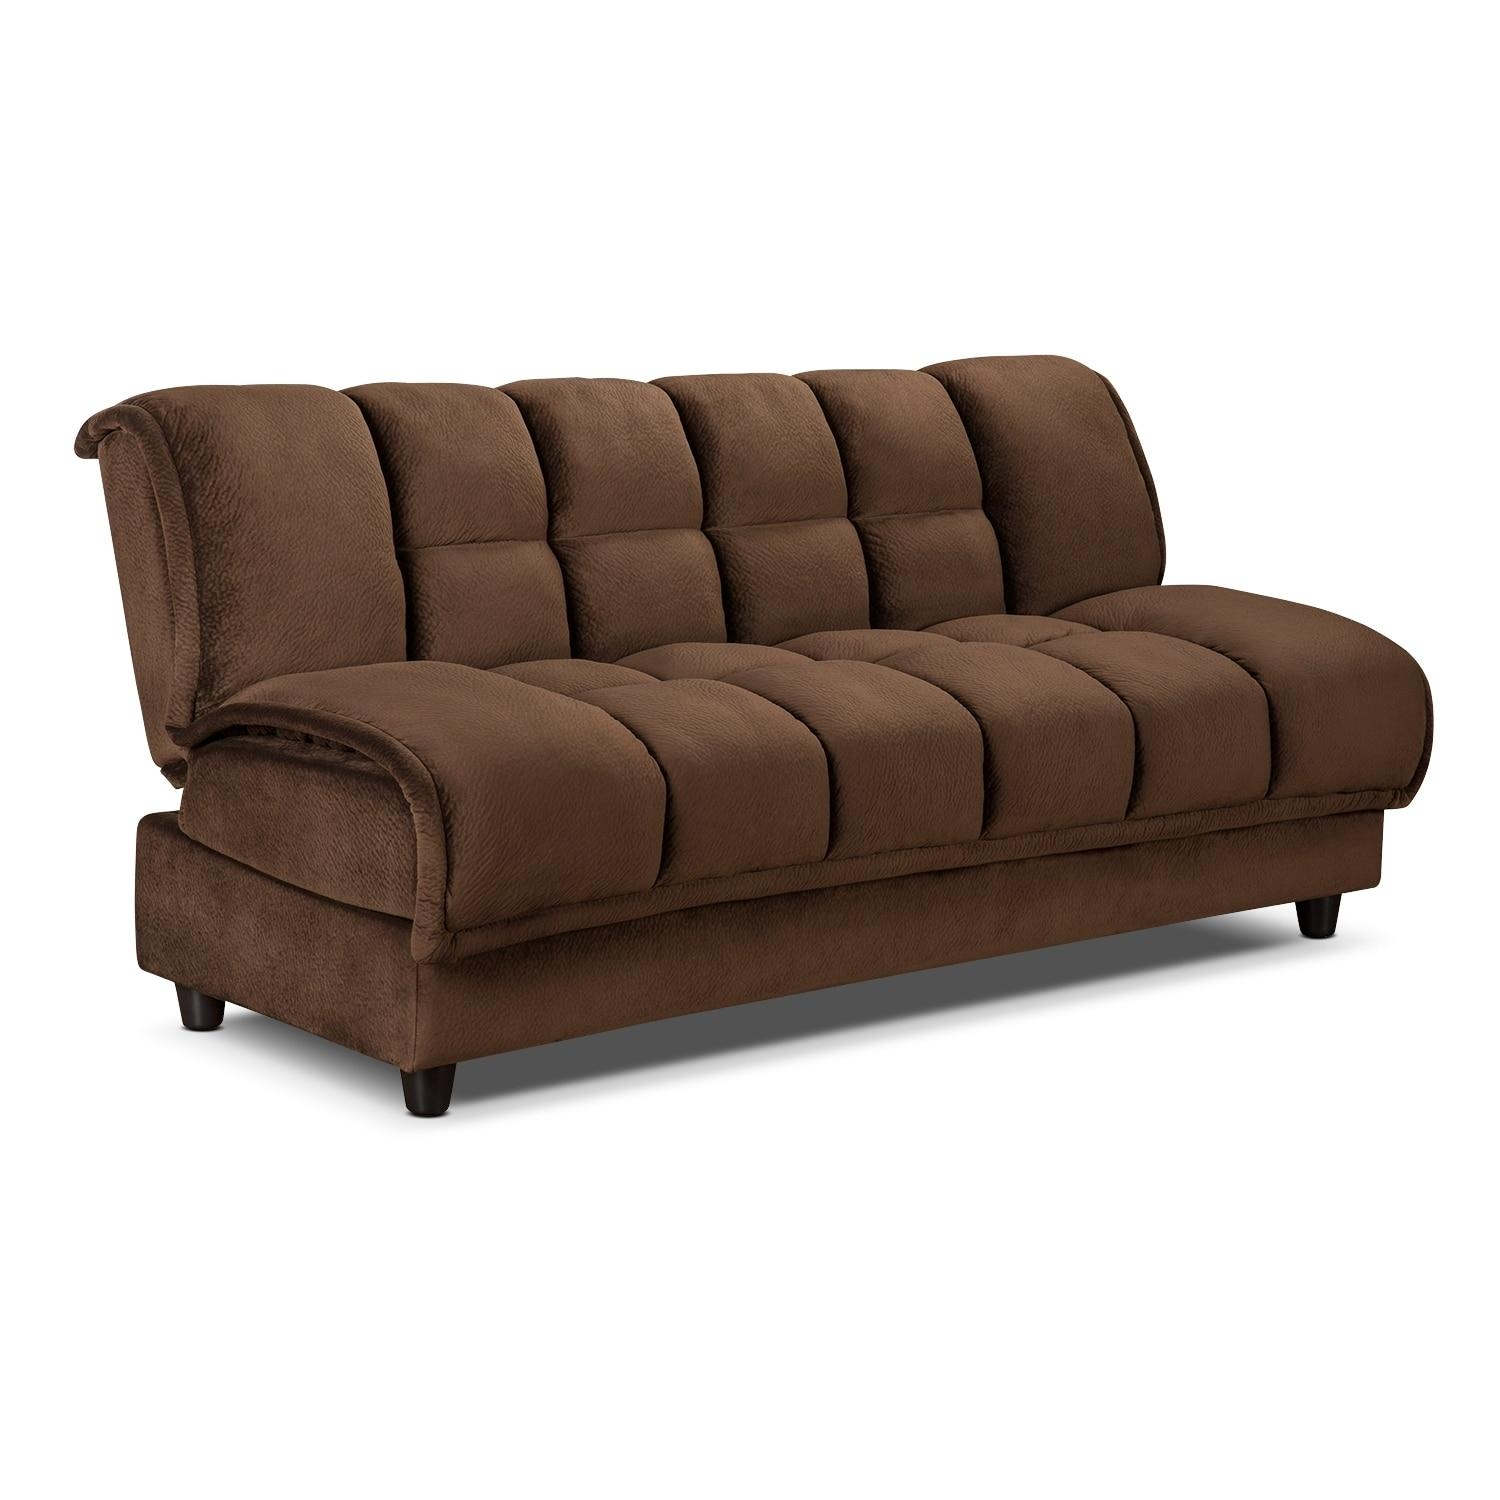 Sleeper Sofas | Value City Furniture | Value City Furniture Intended For Sleeper Sofas (Image 15 of 20)